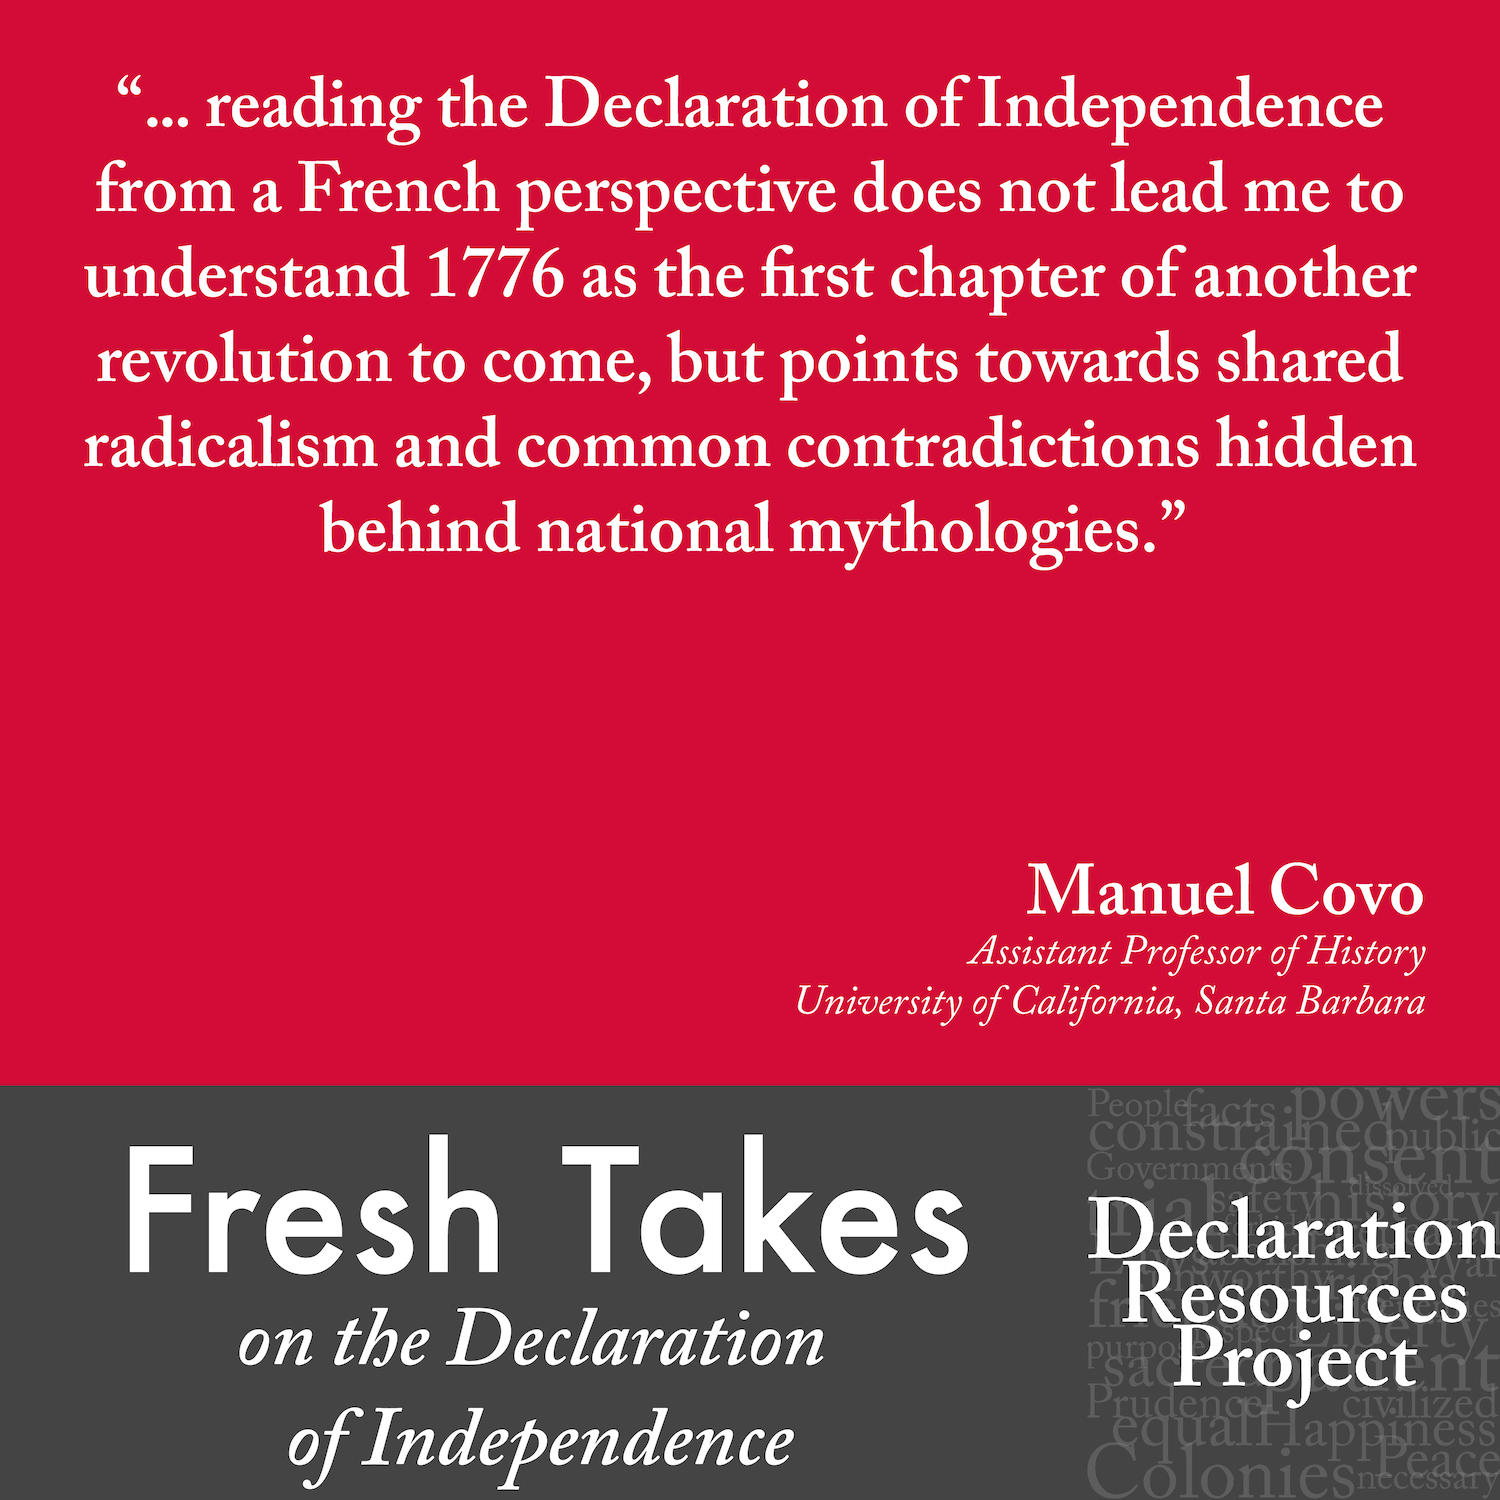 Manuel Covo's Fresh Take on the Declaration of Independence